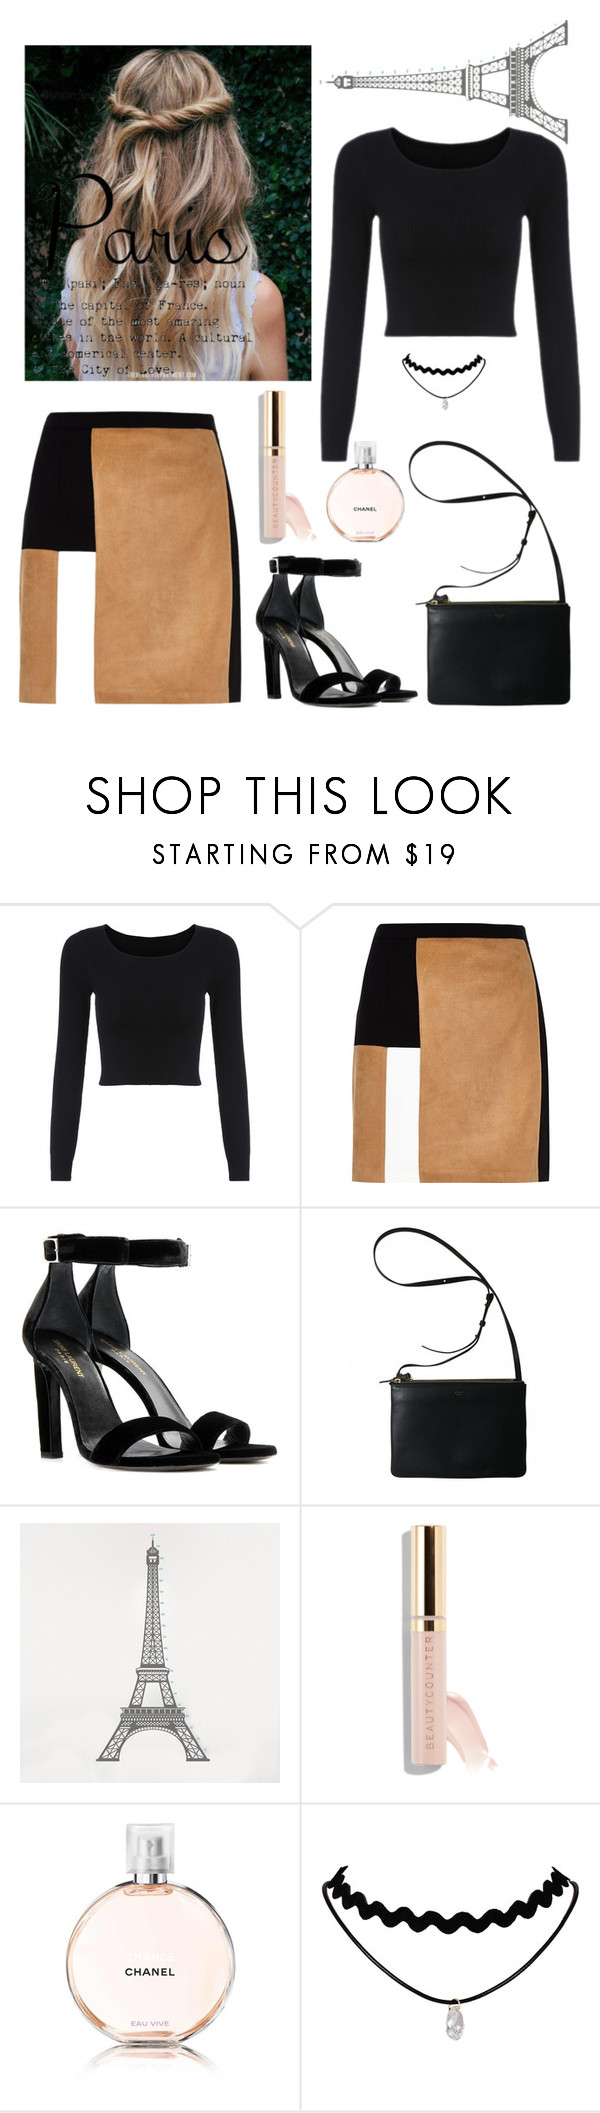 """Paris"" by johannary ❤ liked on Polyvore featuring River Island, Yves Saint Laurent, DOMESTIC, Beautycounter and Chanel"